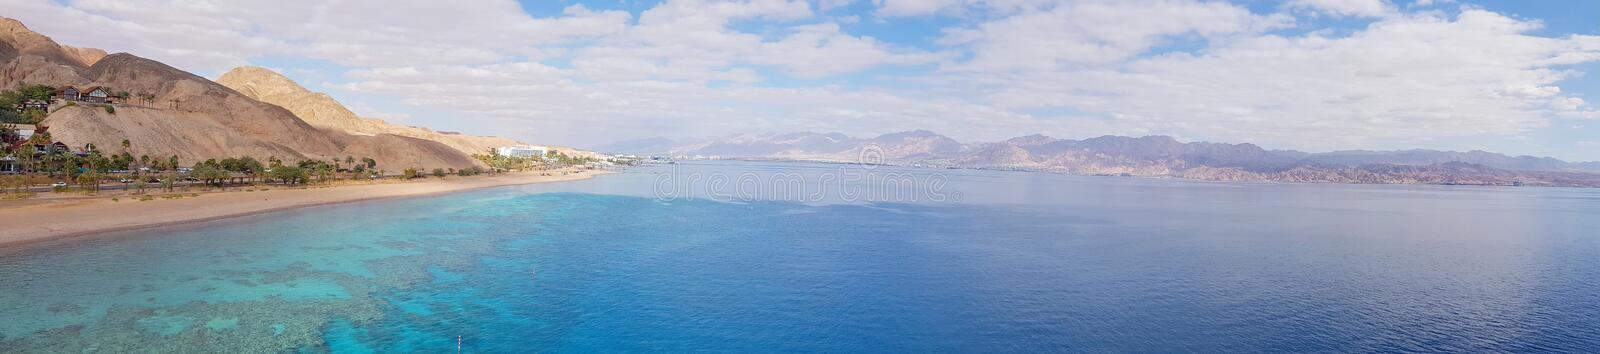 Mountain and coral reef in the Red sea, Israel, Eilat. Panoramic landscape view stock images